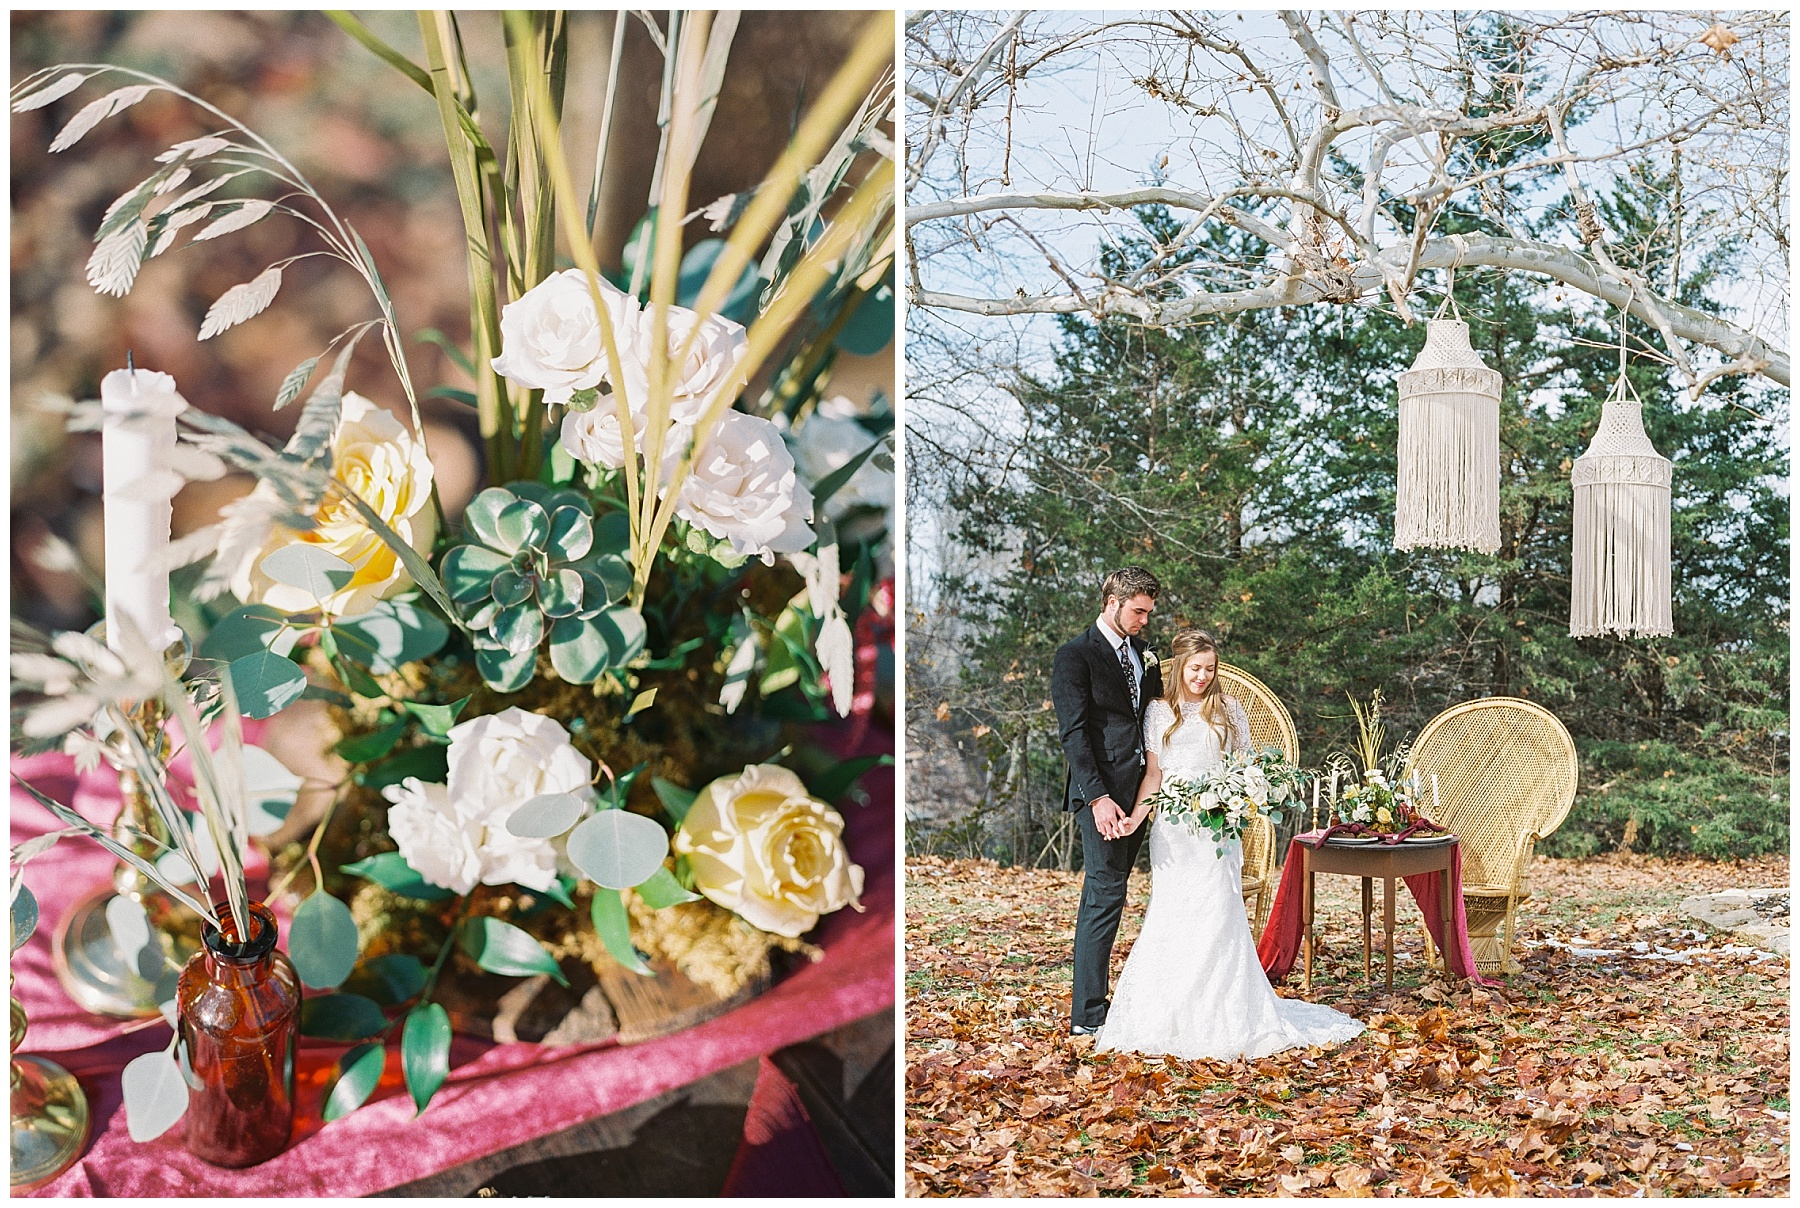 Snowy Winter Wedding at Wildcliff Events Lake With Earthy Jewel Tones and Organic Refined Style by Kelsi Kliethermes Photography Kansas City Missouri Wedding Photographer_0104.jpg